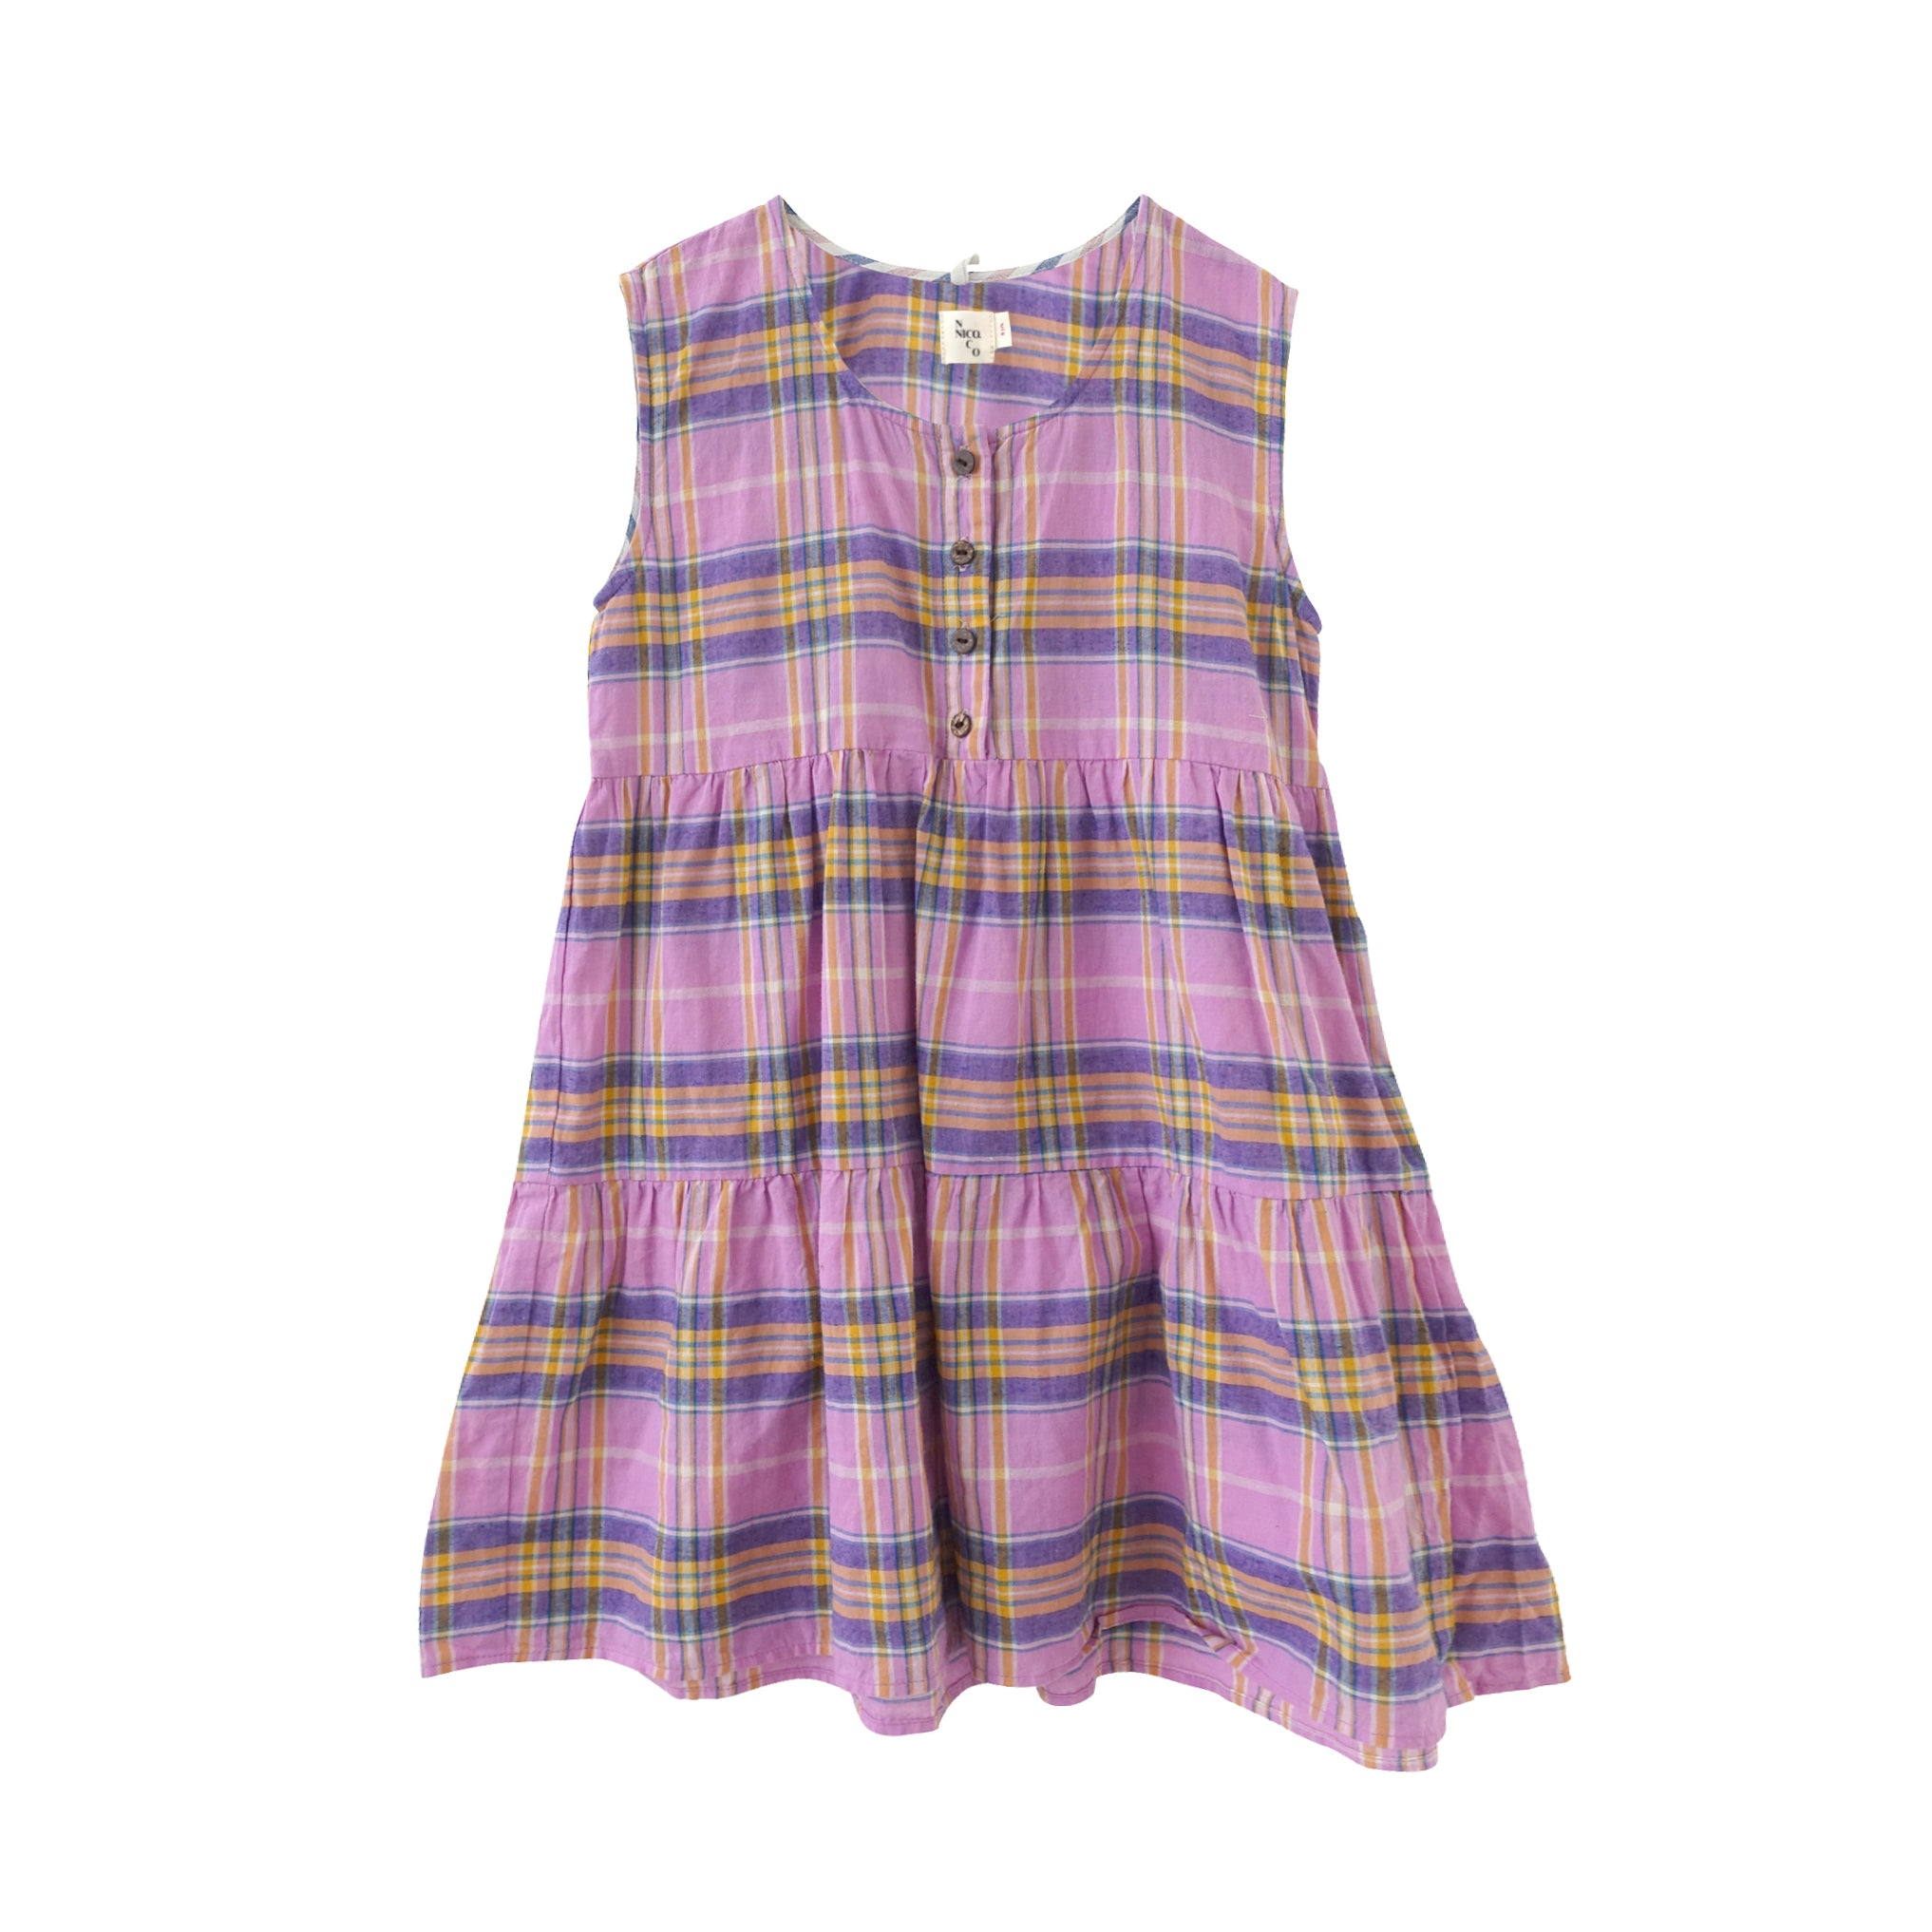 Nico Nico Evelyn Kid's Tiered Sundress Orchid Picnic Check | BIEN BIEN www.bienbienshop.com